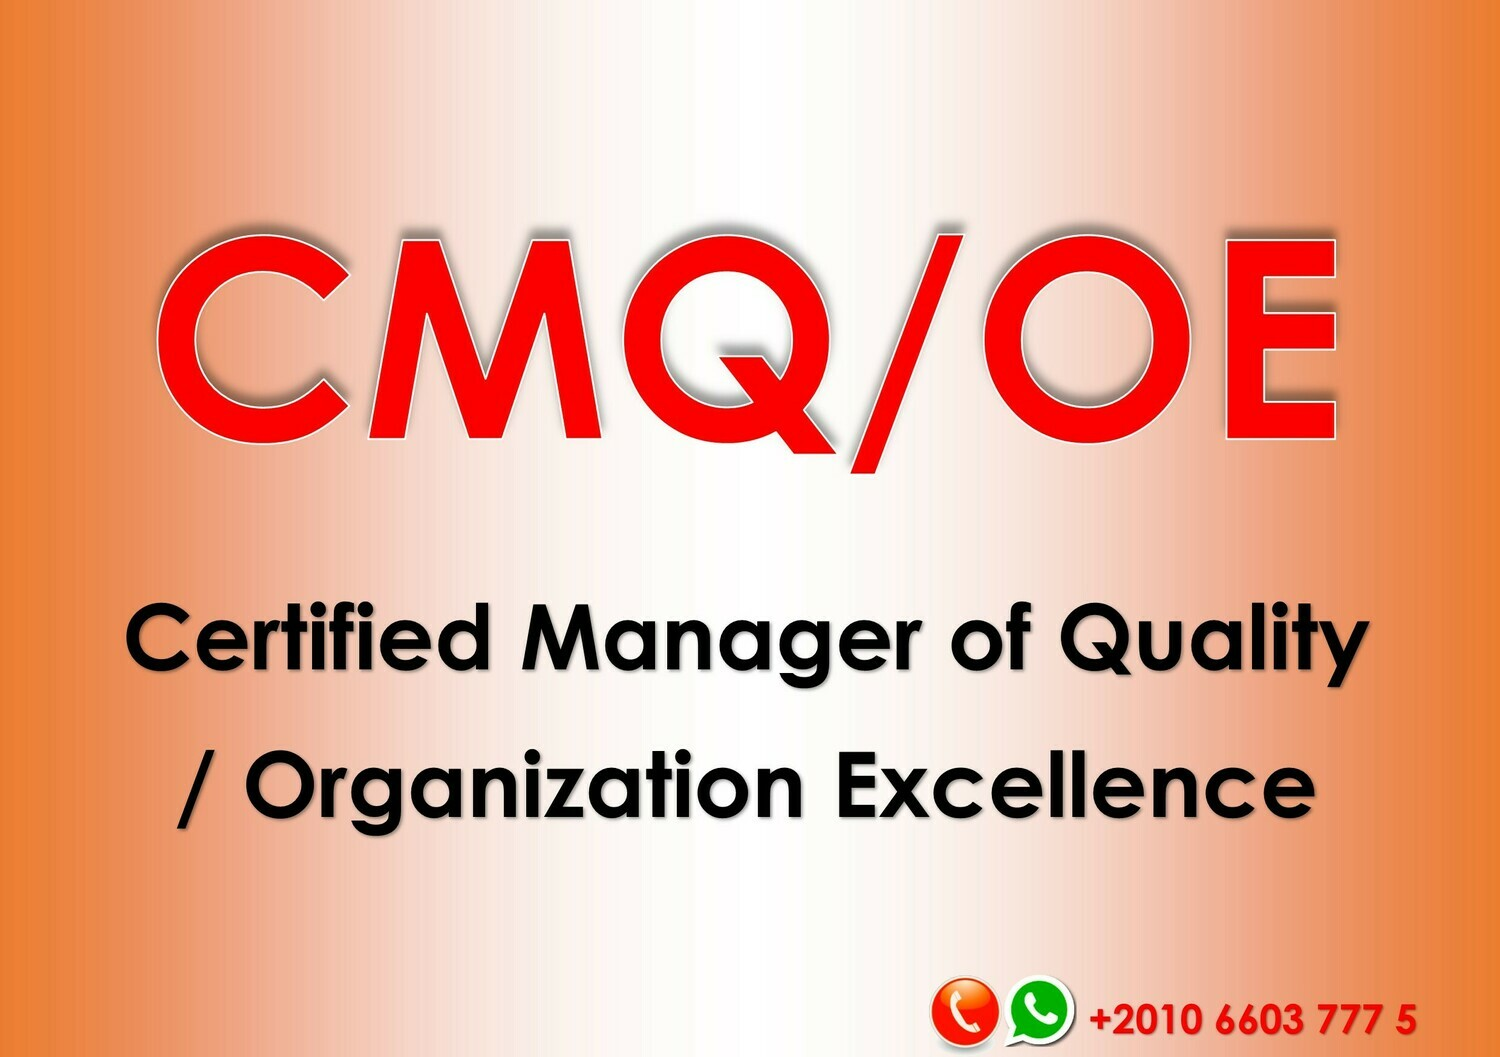 Preparation Course for the Certified Manager of Quality/Organizational Excellence (CMQ/OE) - Classroom Training Course